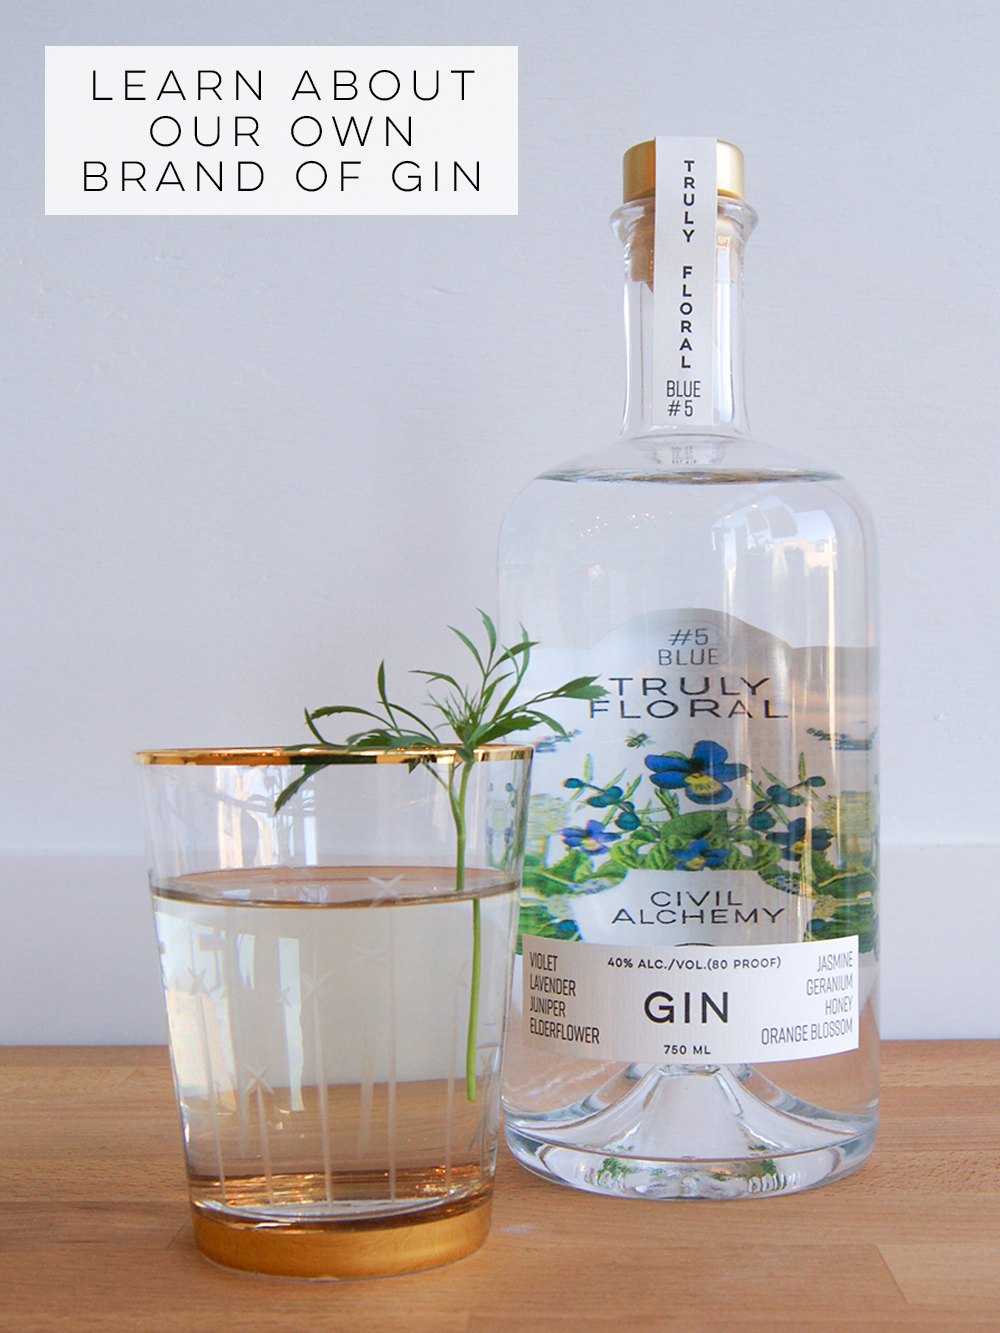 LEARN ABOUT OUR OWN BRAND OF GIN - Truly Floral Blue #5.